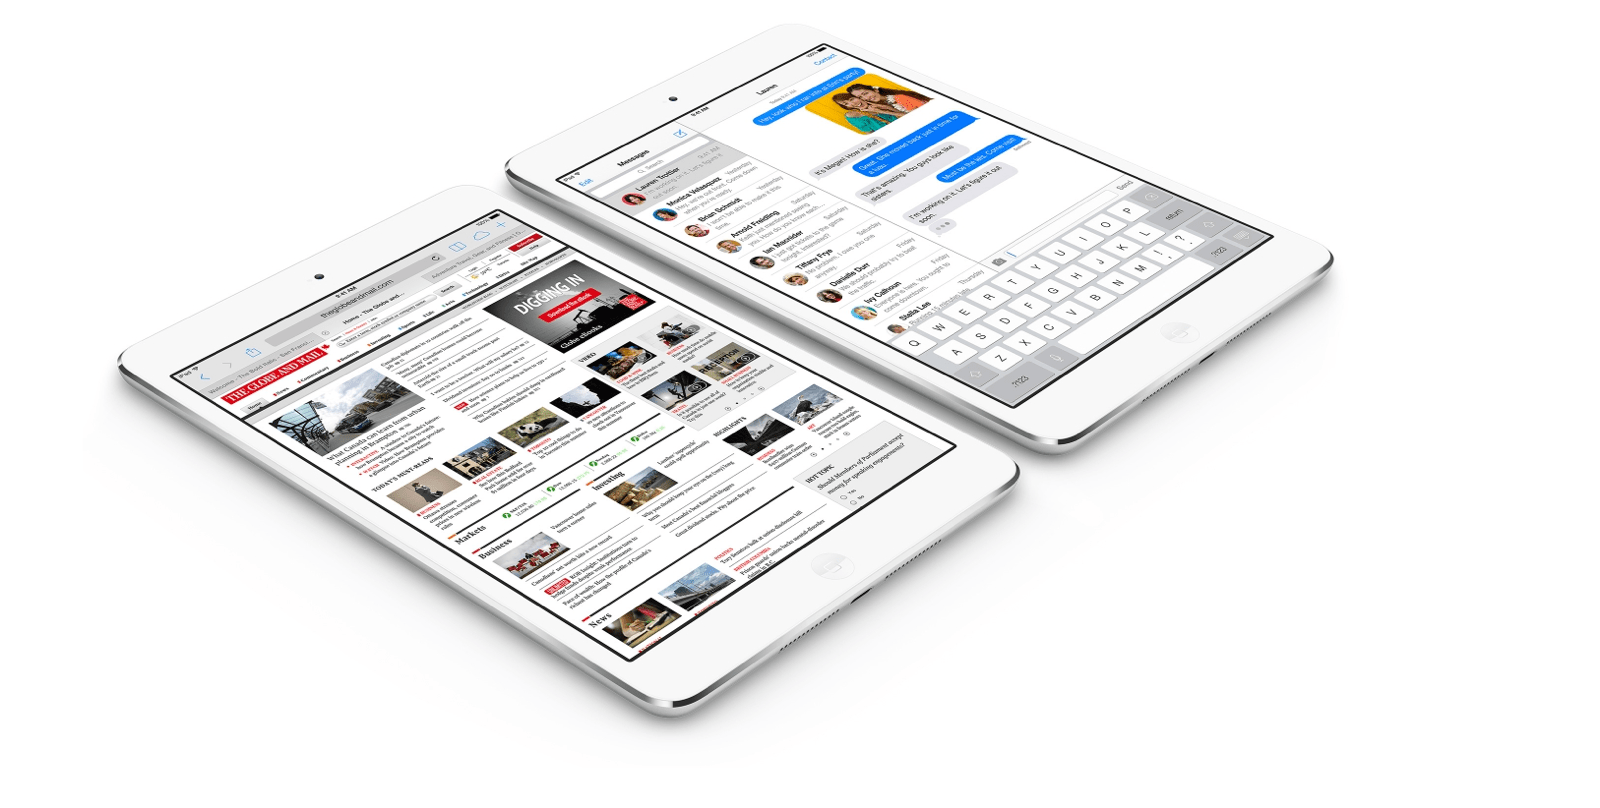 Home Depot Canada Starts Using Ipad Minis To Boost Sales